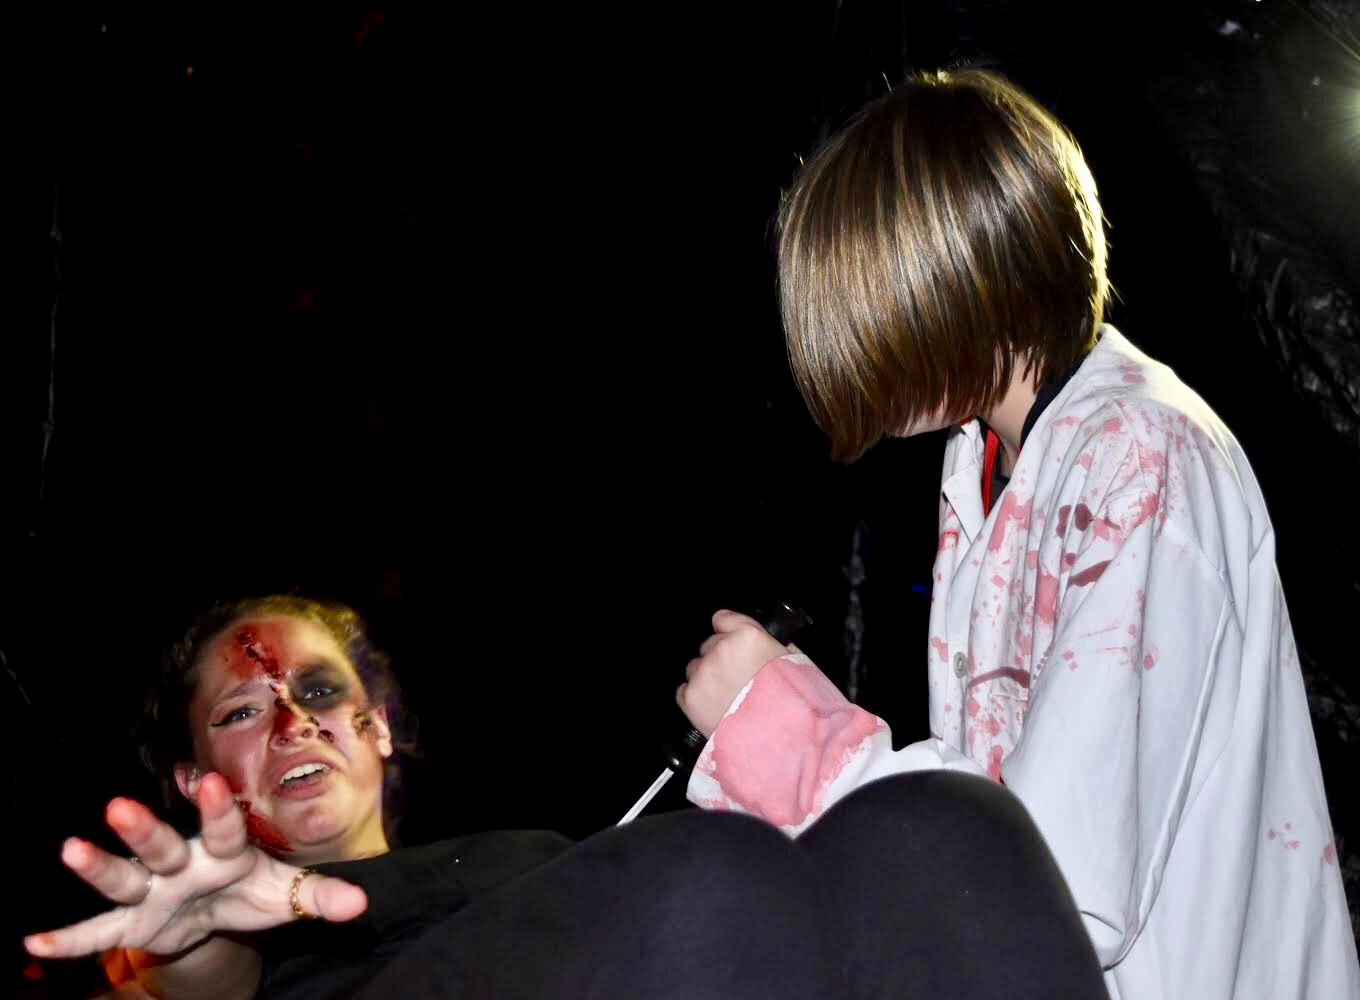 New Tech High @ Coppell students volunteer to usher and act out multiple scenes, with extremely detailed costumes and bloody makeup on Oct. 25. New Tech High @ Coppell hosts its 11th annual haunted house and Fall Festival since 2008.